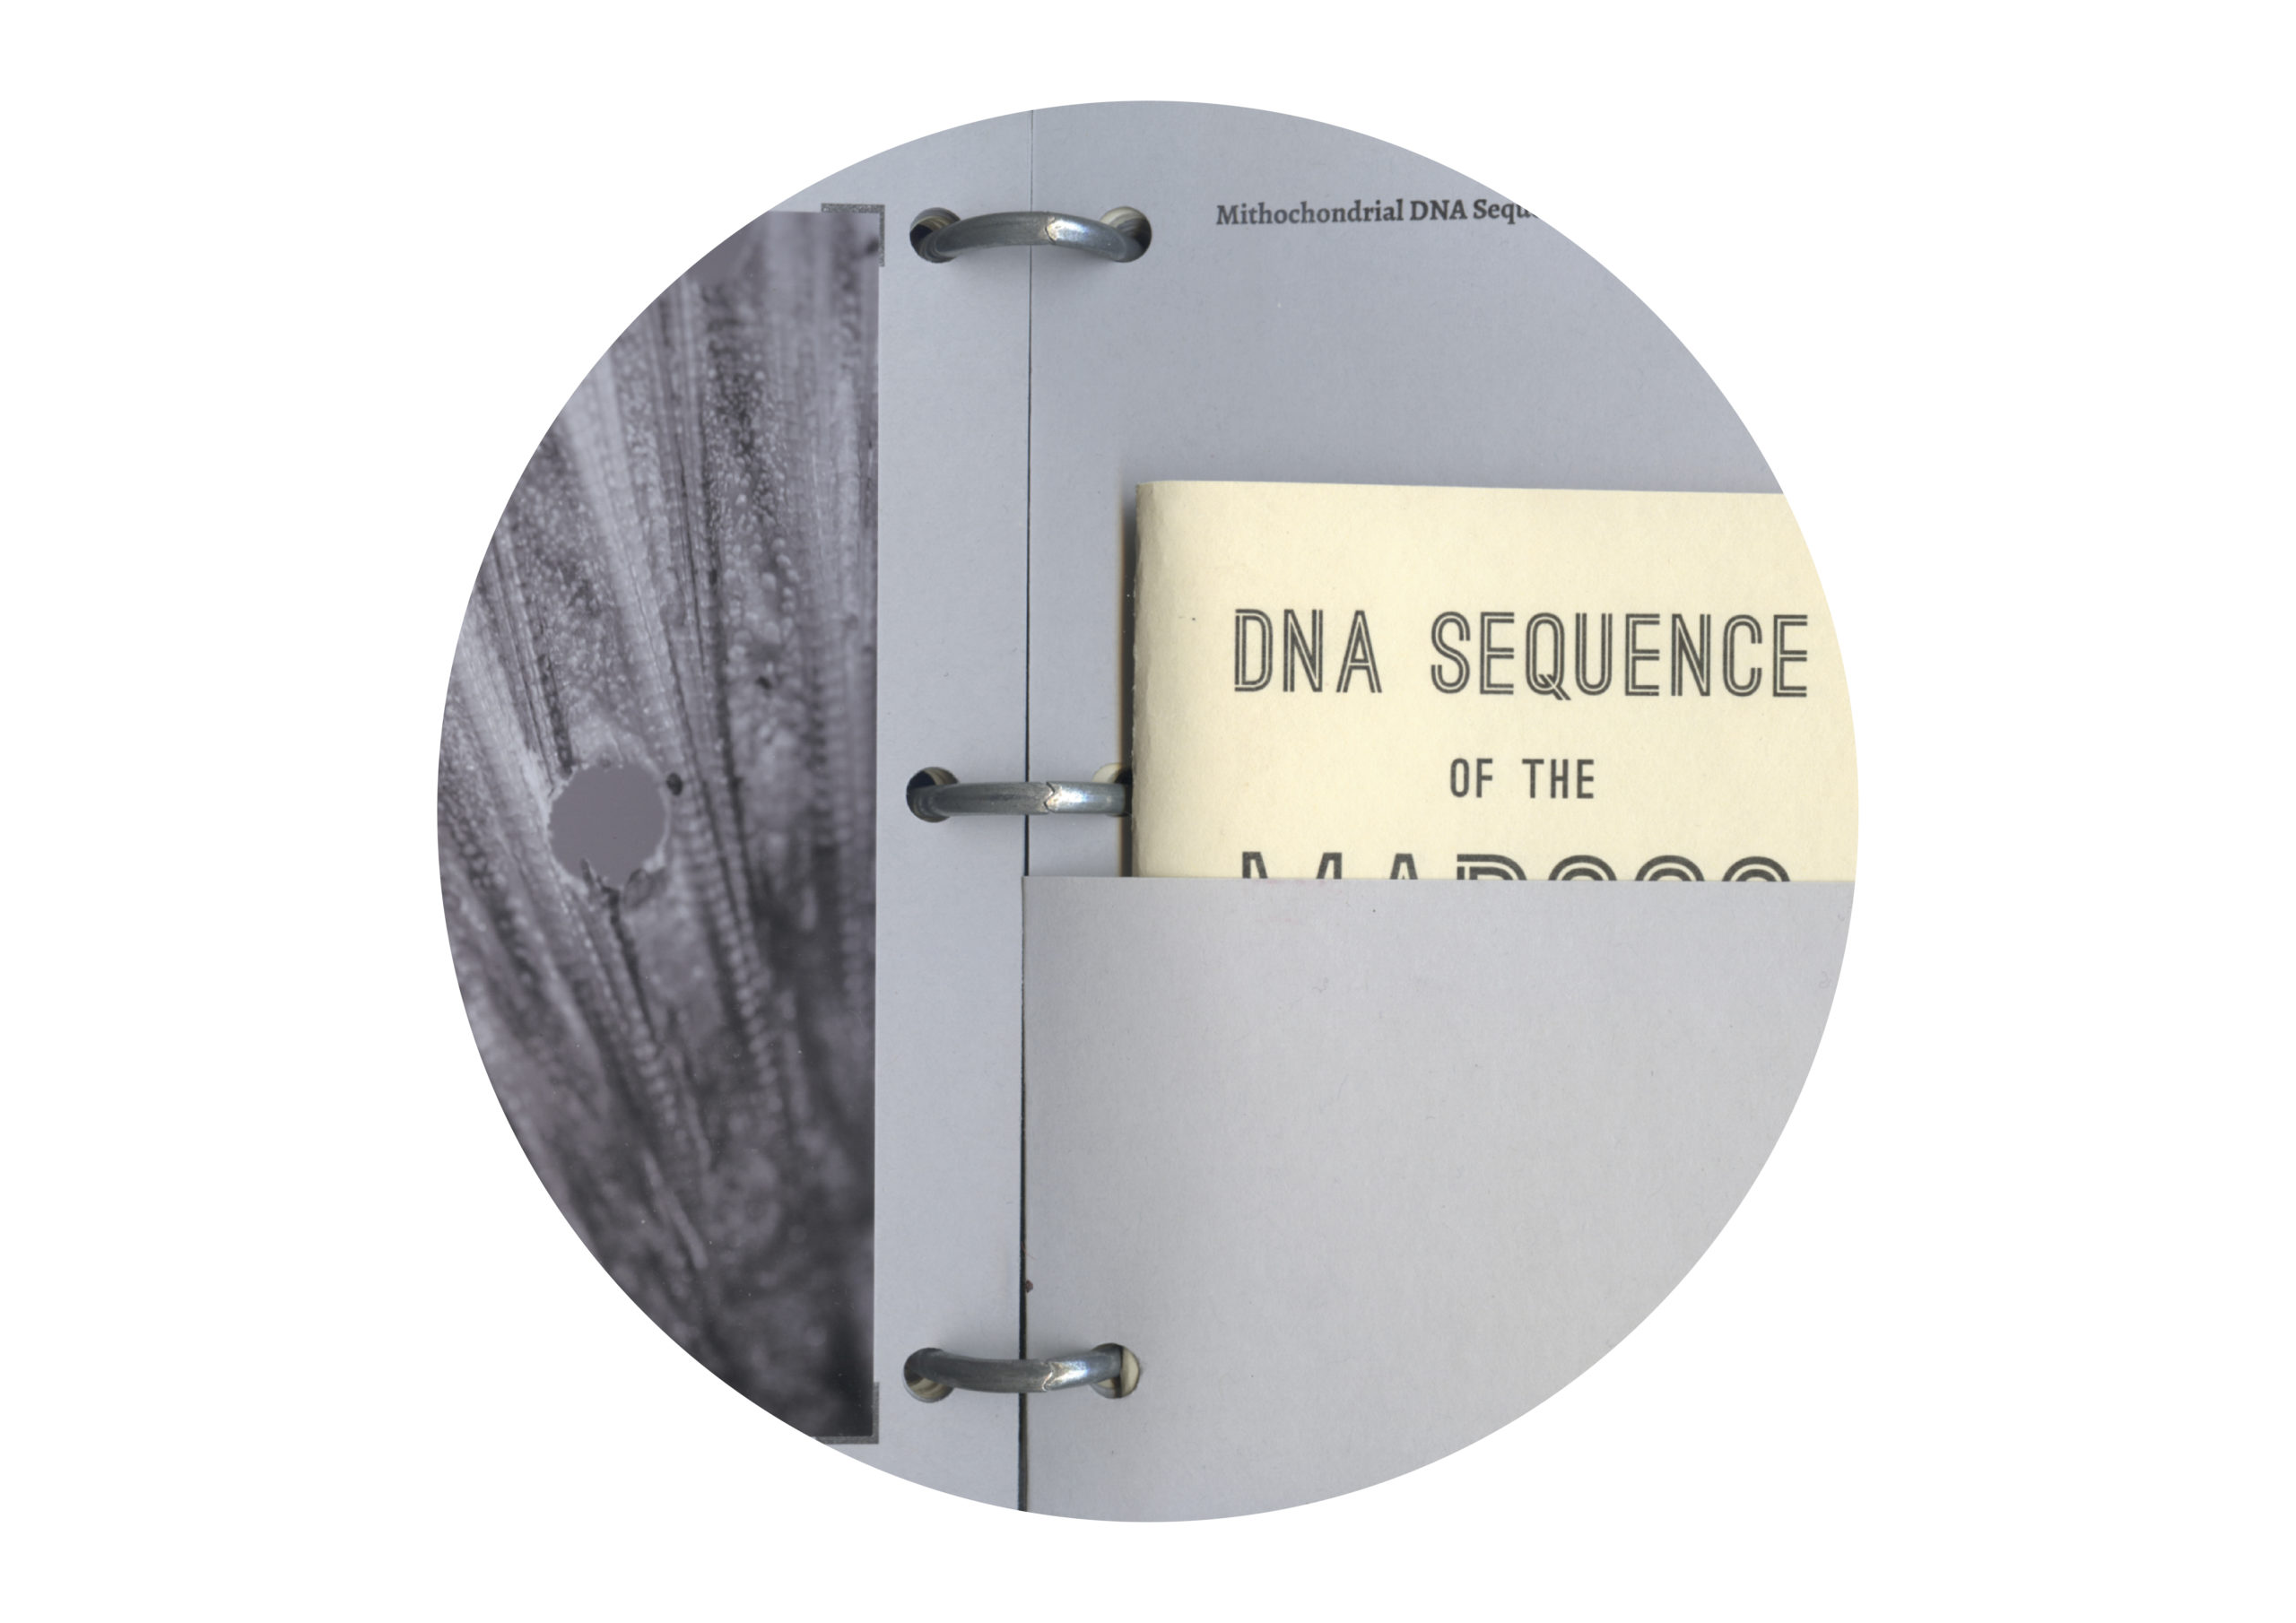 Detail image of a binder with a pocket encasing a book with the title, DNA SEQUENCE OF THE [indiscernible word]. There is a photograph on the left with organic textures that are also indiscernible.